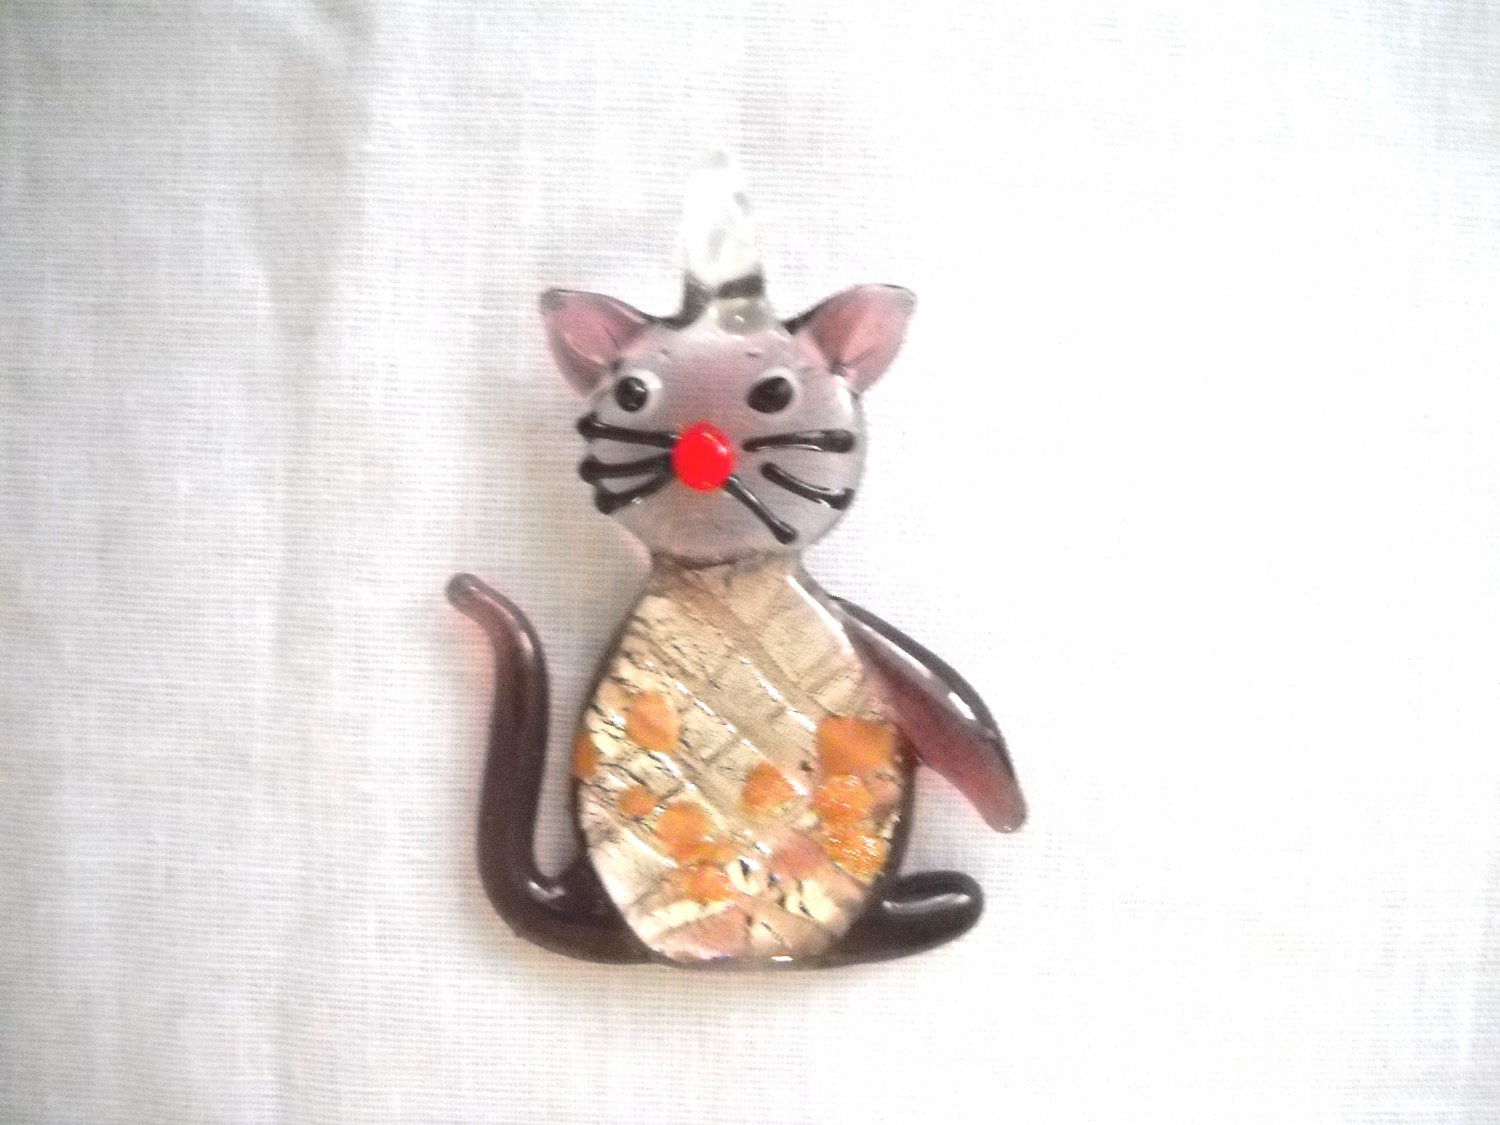 NEW PURPLE KITTY CAT SOLID GLASS PENDANT ADJUSTABLE MEOW NECKLACE